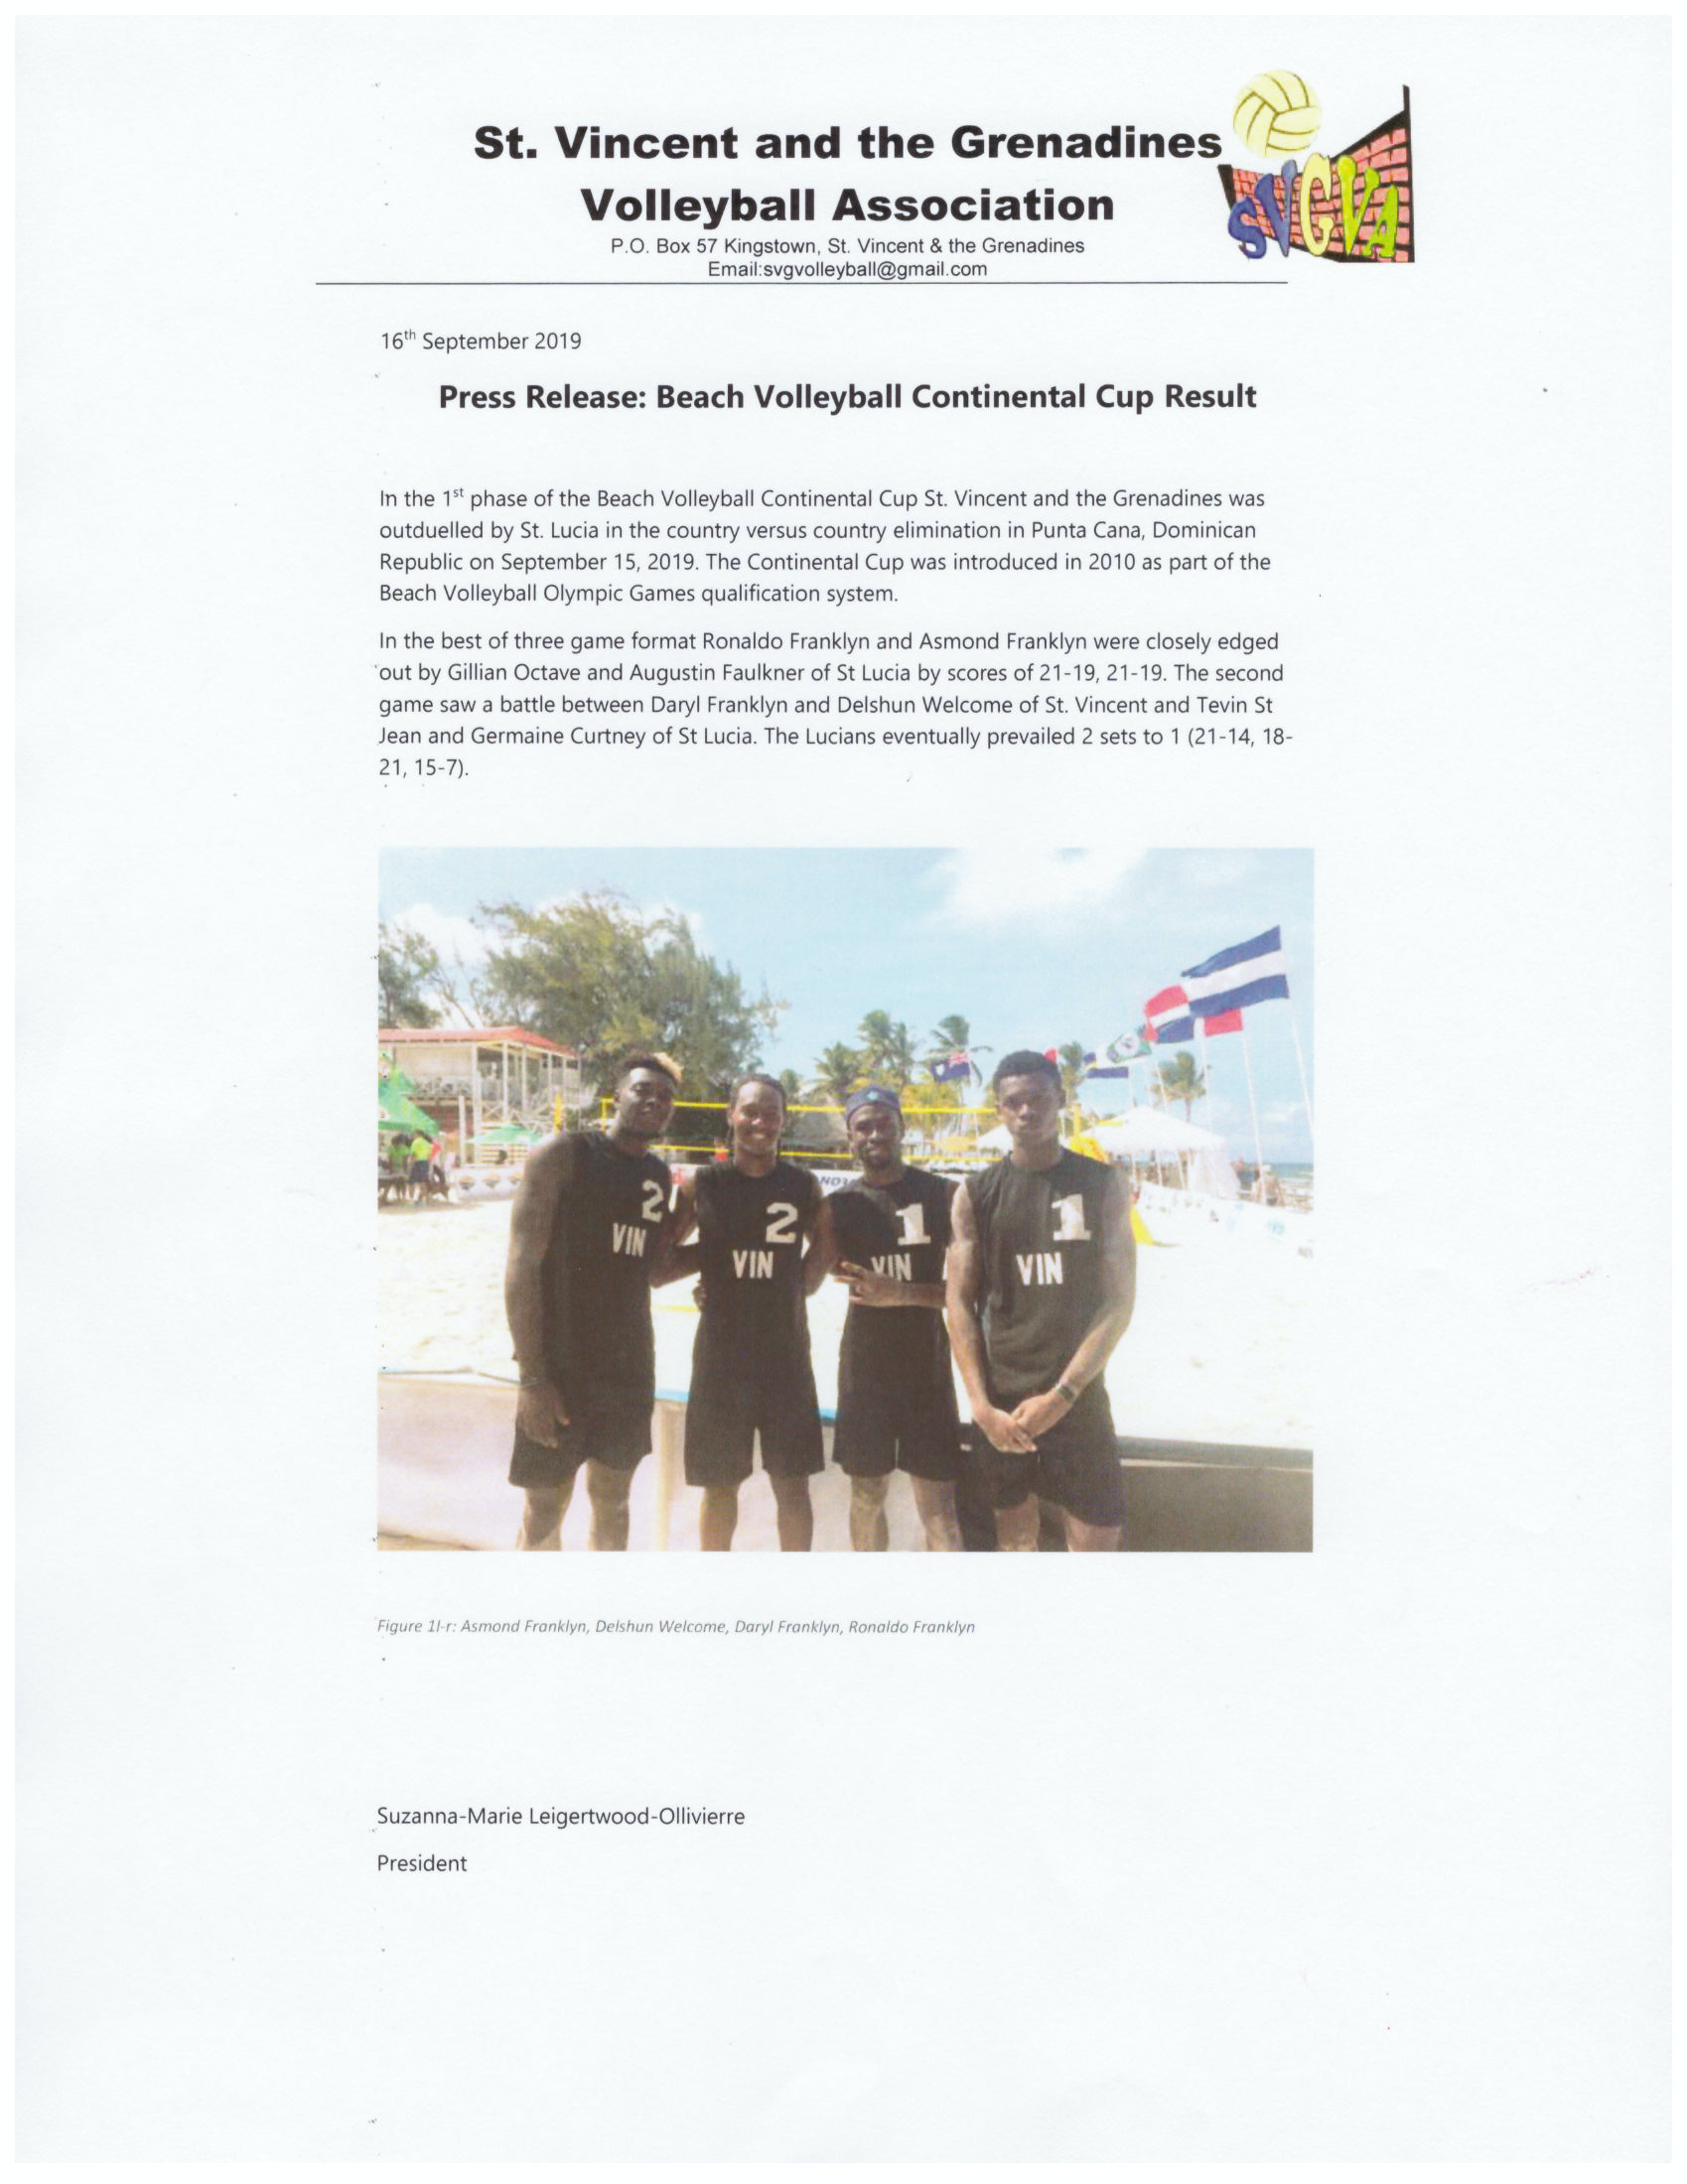 2019 Sep 16 Press Release - Beach Volleyball Continental Cup Result